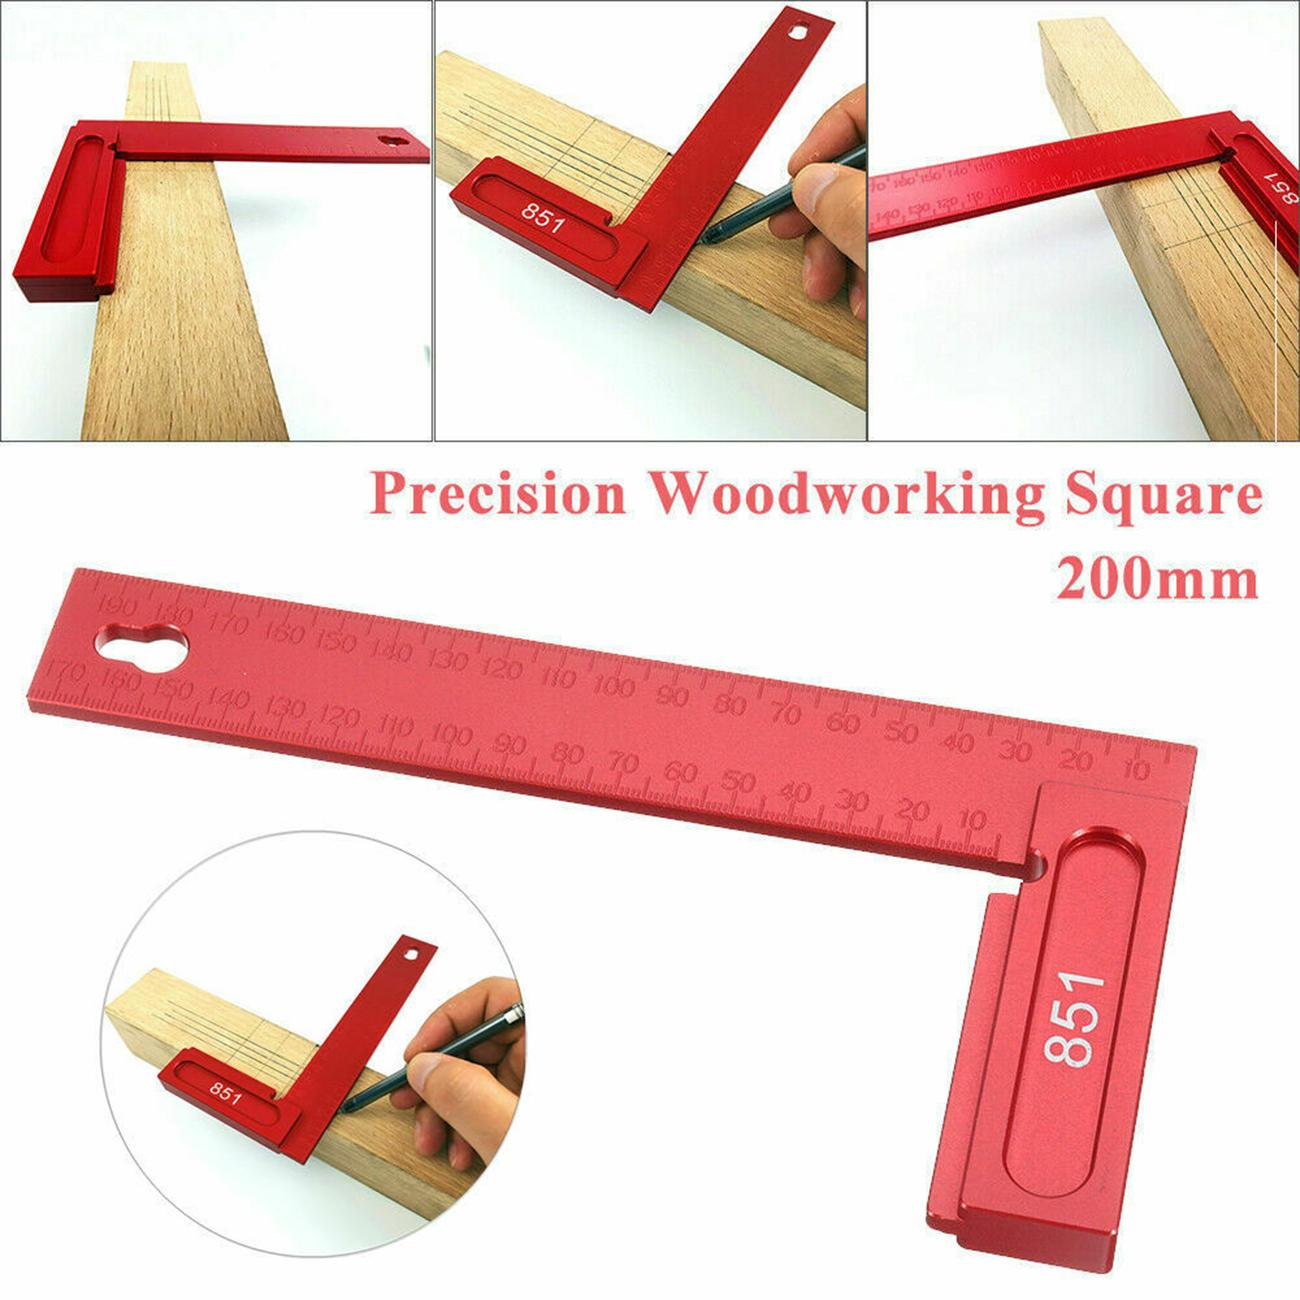 0-200mm Positioning Ruler 851 Square Carpenter Tool Aluminum Alloy L-Shaped Woodworking 90 Degrees Picture Frames for clamp to Boxes Carpenter Ruler